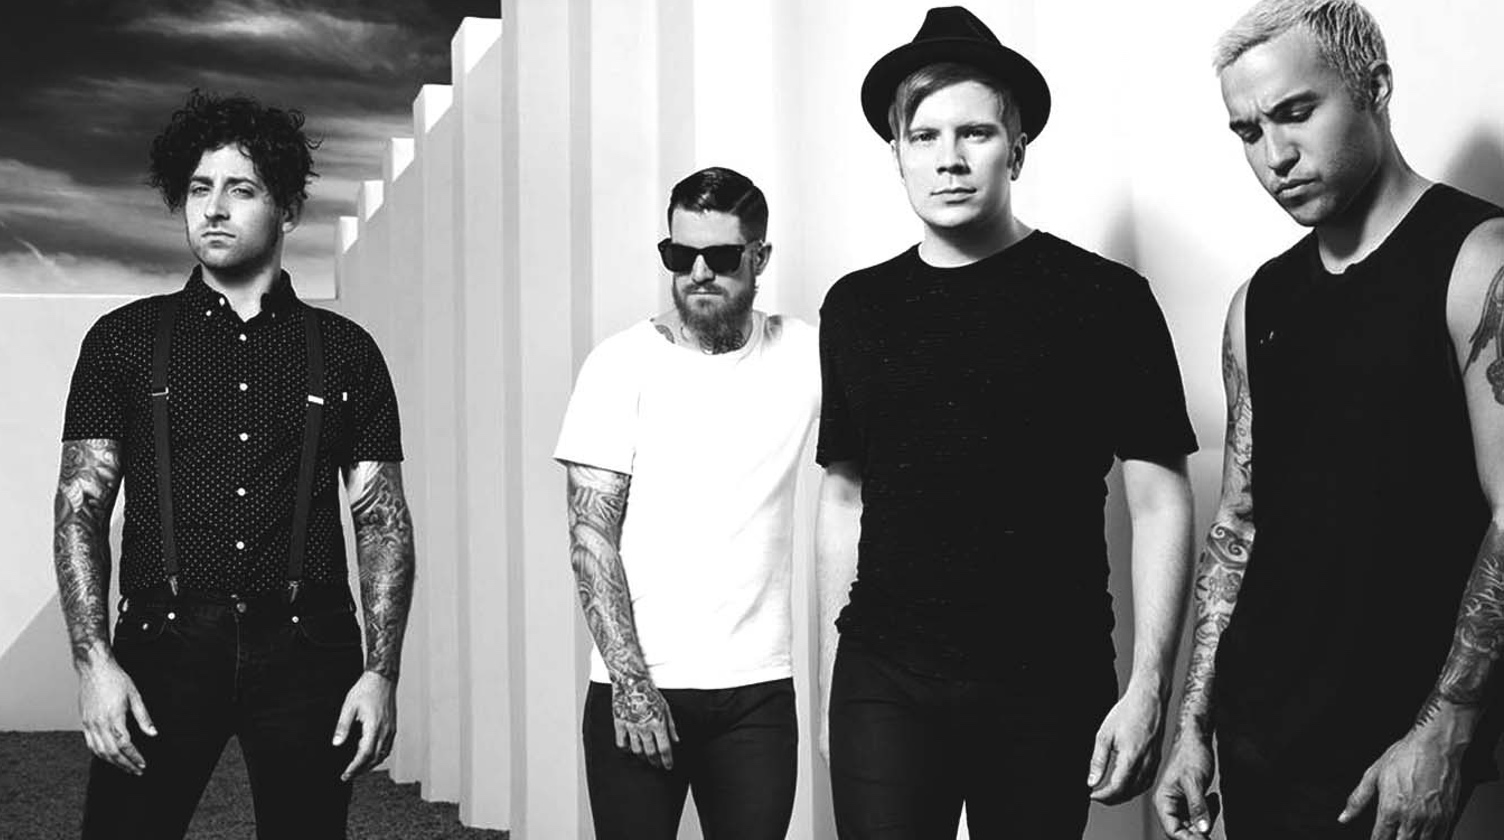 Fall out boy announce fall out boy fund chorus sciox Choice Image